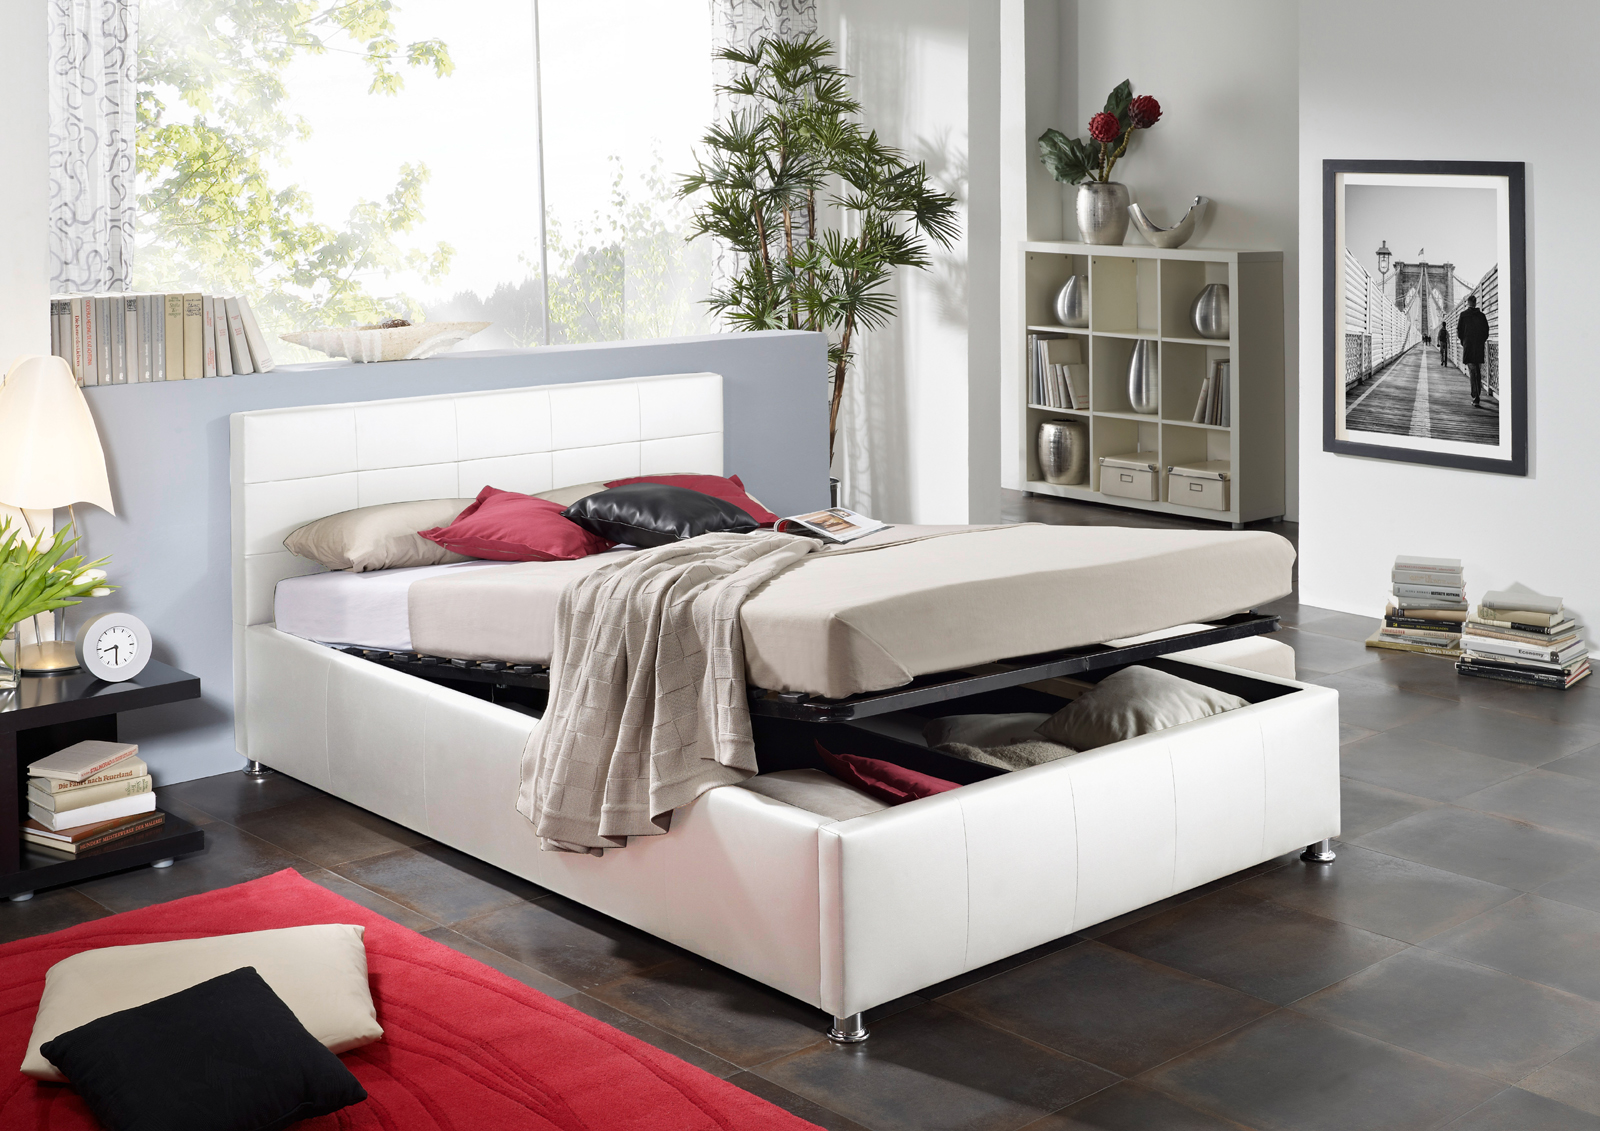 sam design bett 140 x 200 cm wei kira bettkasten auf lager. Black Bedroom Furniture Sets. Home Design Ideas